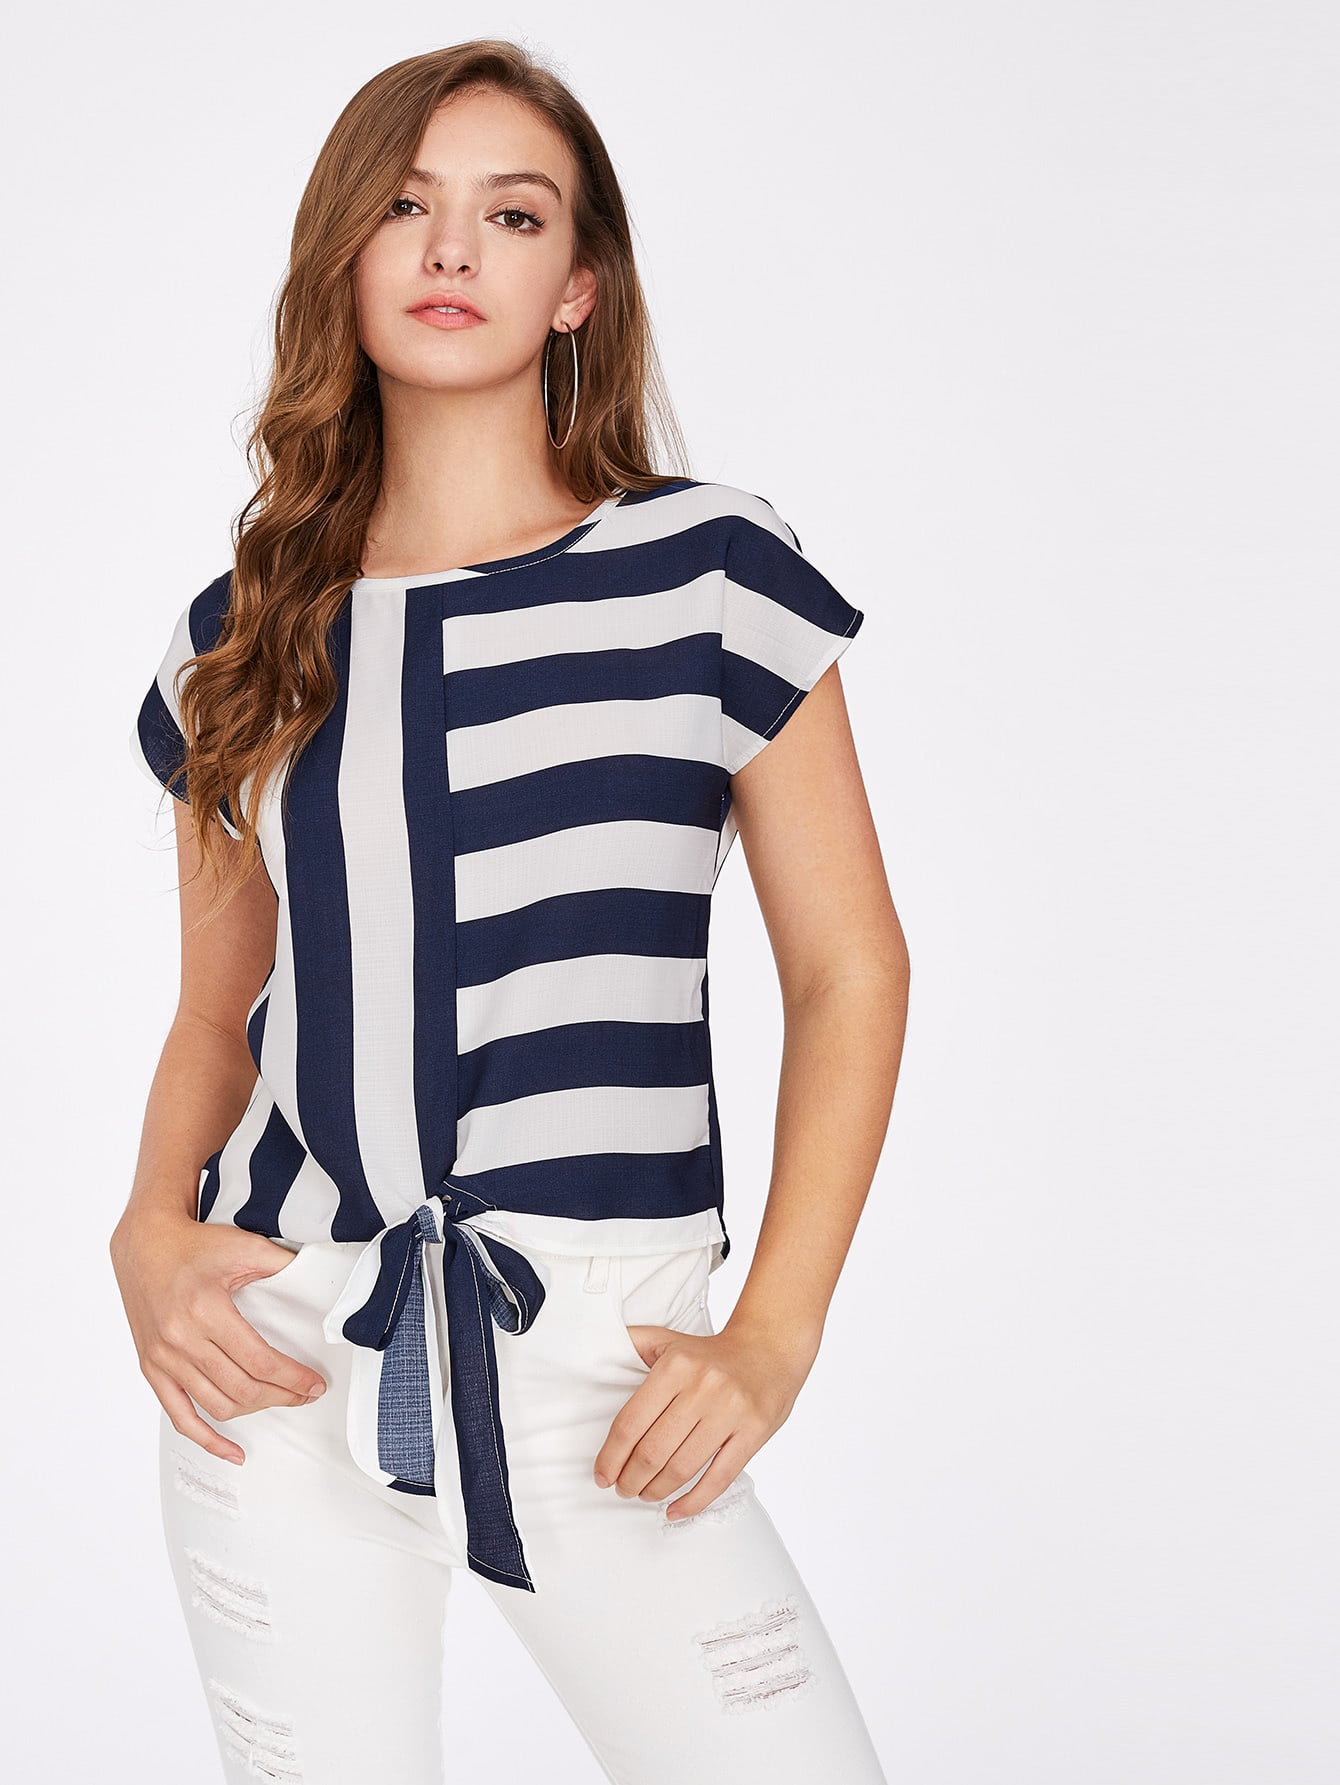 Mixed Striped Tied Front Top blouse170711702